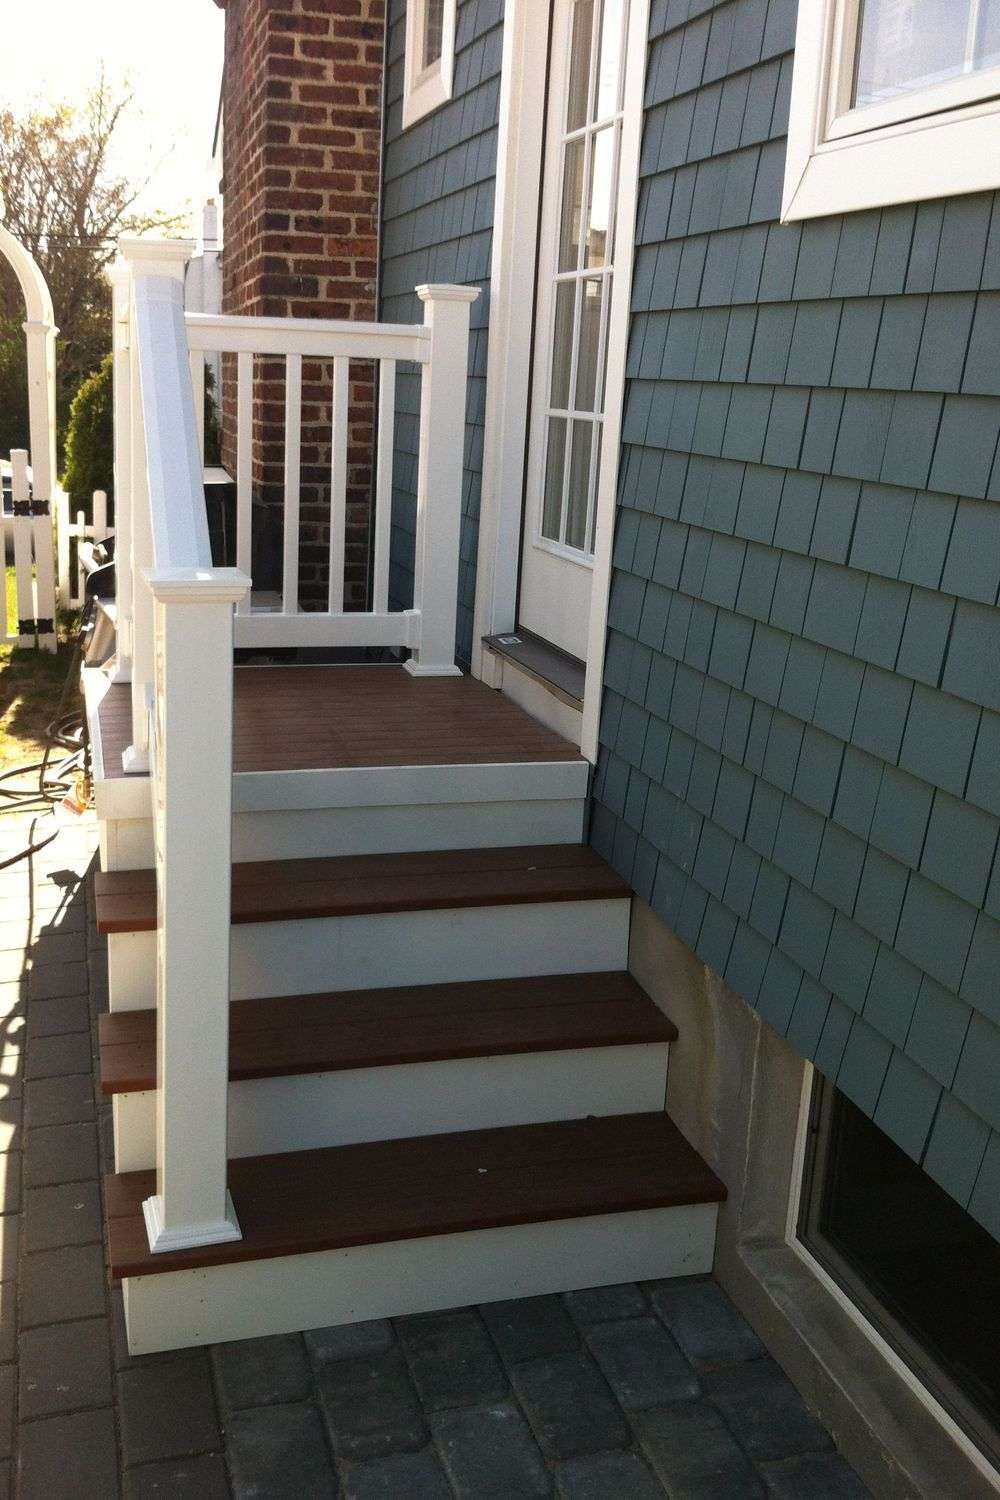 Porch Deck Stairs Patio Property Brick In 2020 Patio Stairs House Entrance House With Porch